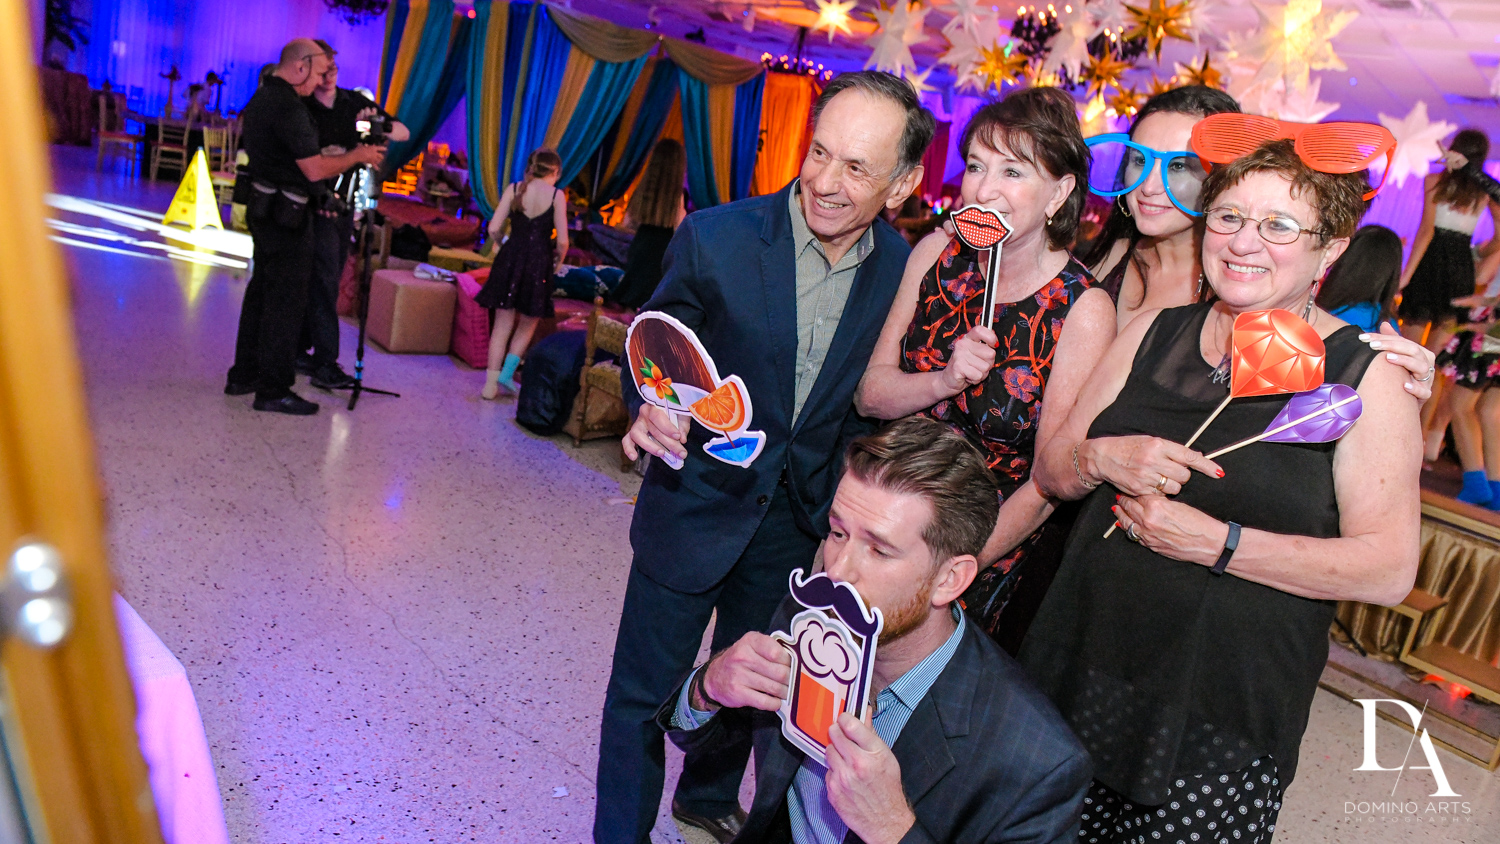 silly photo props at Exotic Moroccan BNai Mitzvah at Lavan by Domino Arts Photography